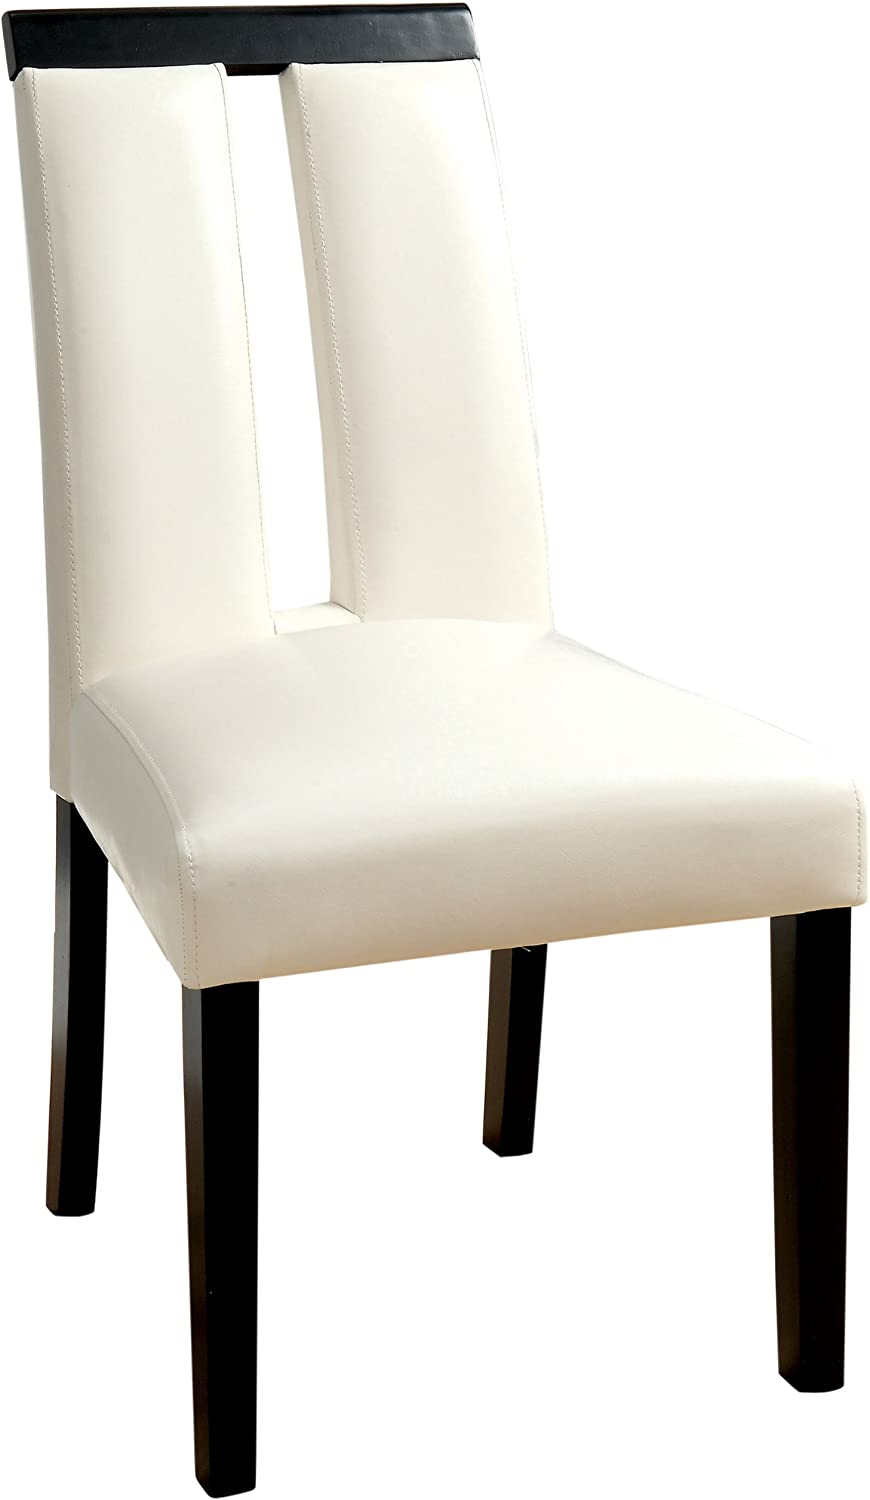 Furniture of America Brighton Leatherette Dining Side Chair, White, Set of 2